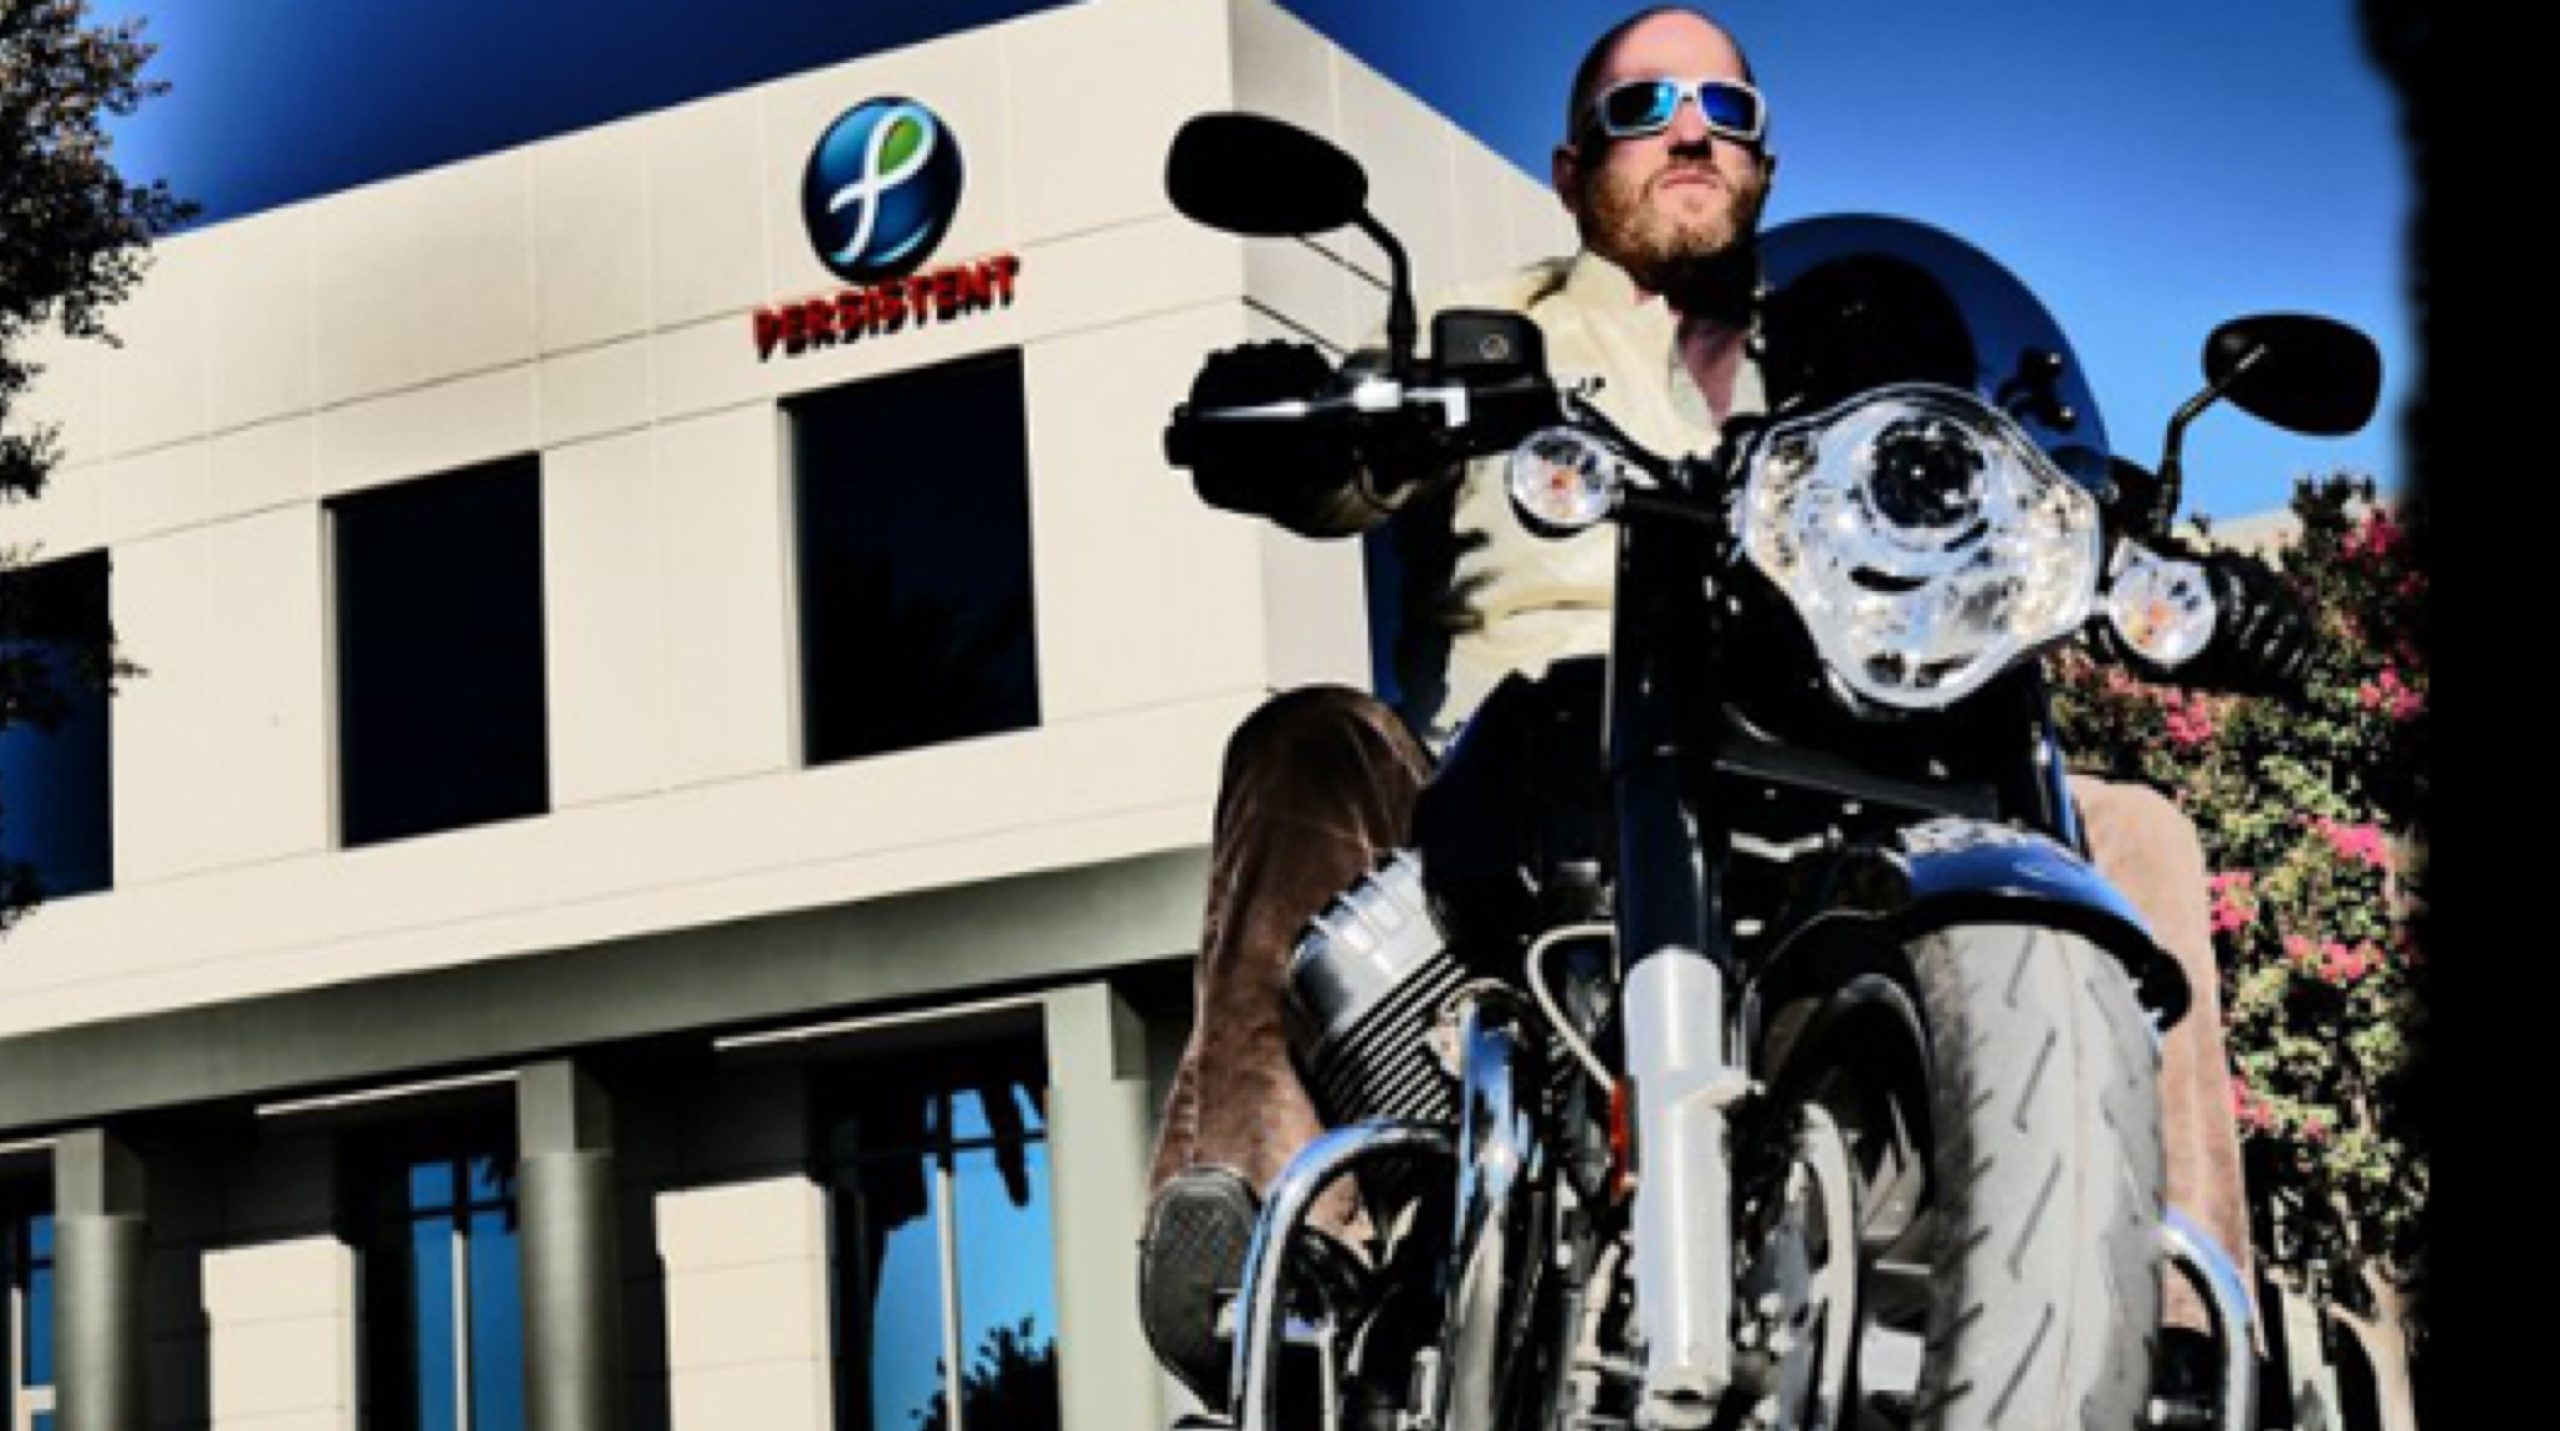 blog-banner-Agile-and-the-Art-of-Motor-Cycle-Maintenance